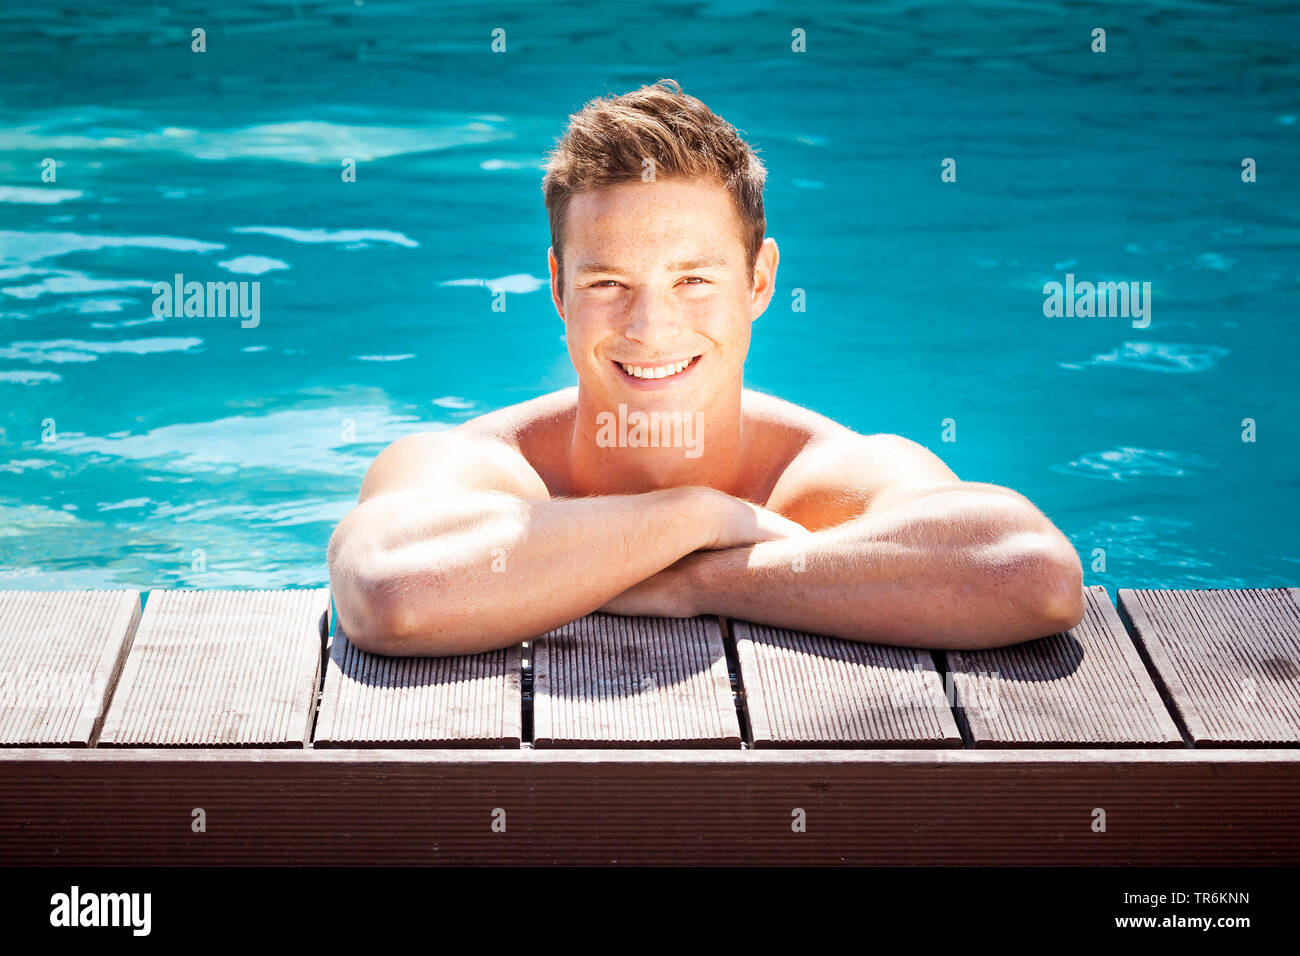 junger dunkelblonder Mann am Beckenrand eines Swimmingpools, Deutschland | young blond man in a swimming pool, Germany | BLWS486390.jpg [ (c) blickwin - Stock Image